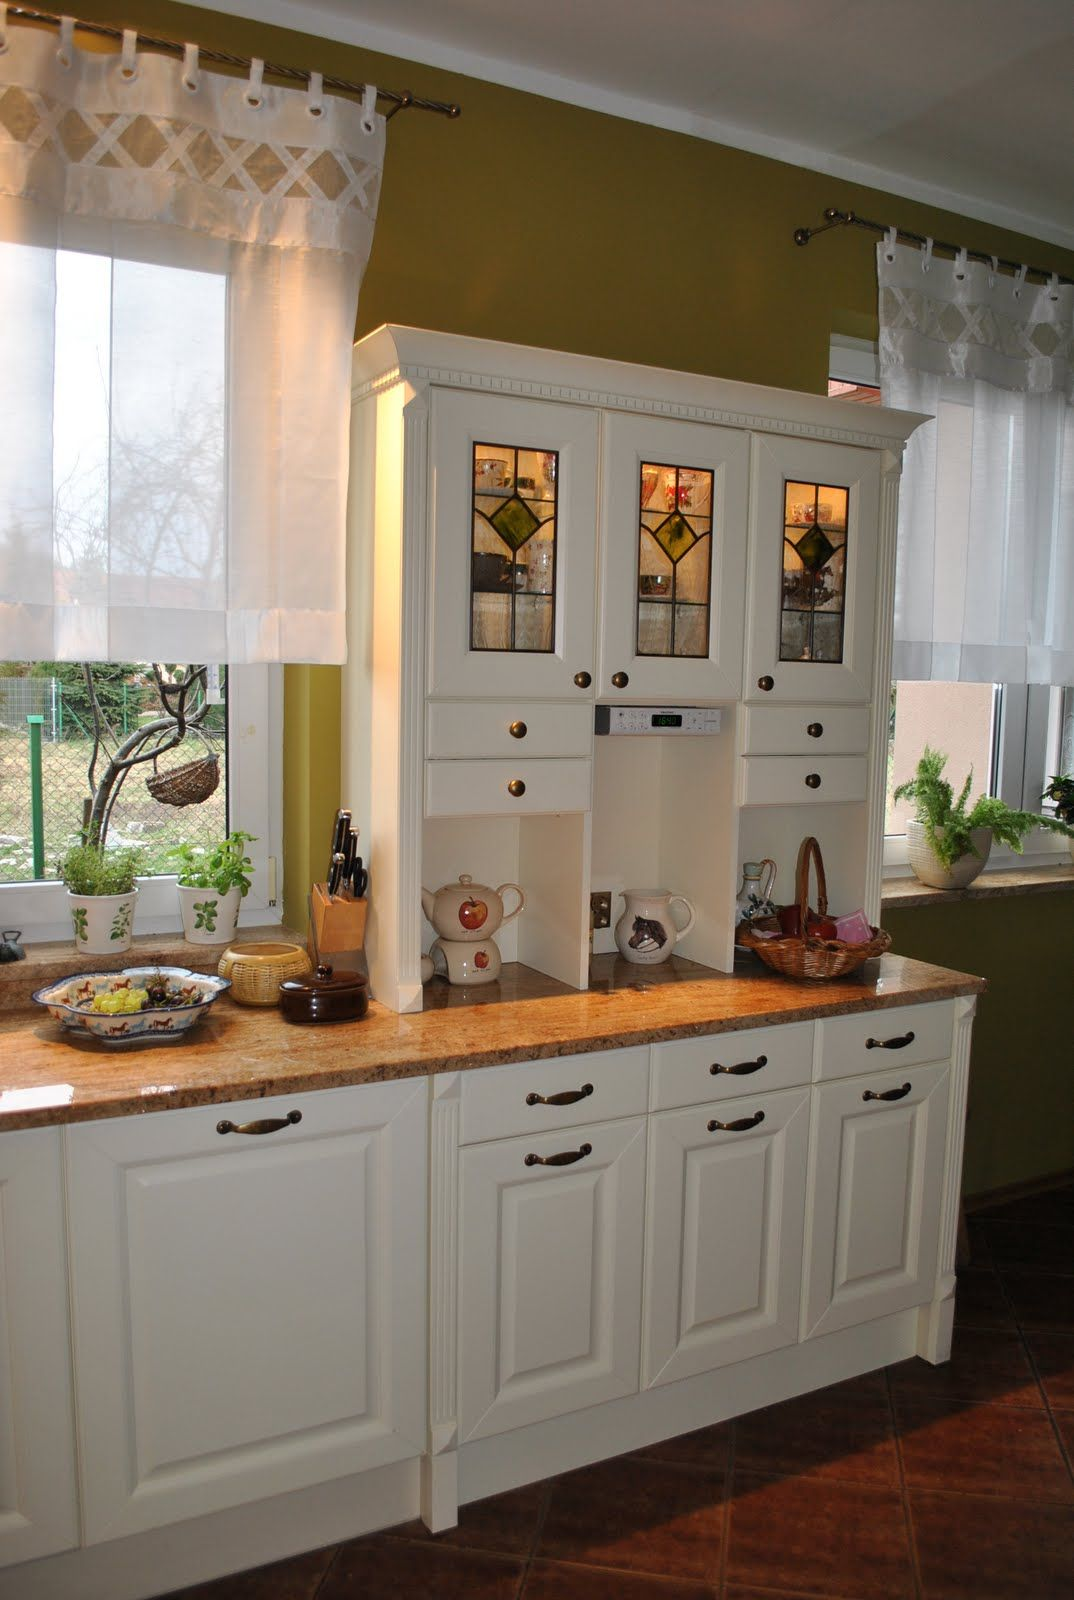 Image of Country Style Kitchen Cupboards on Inspiring